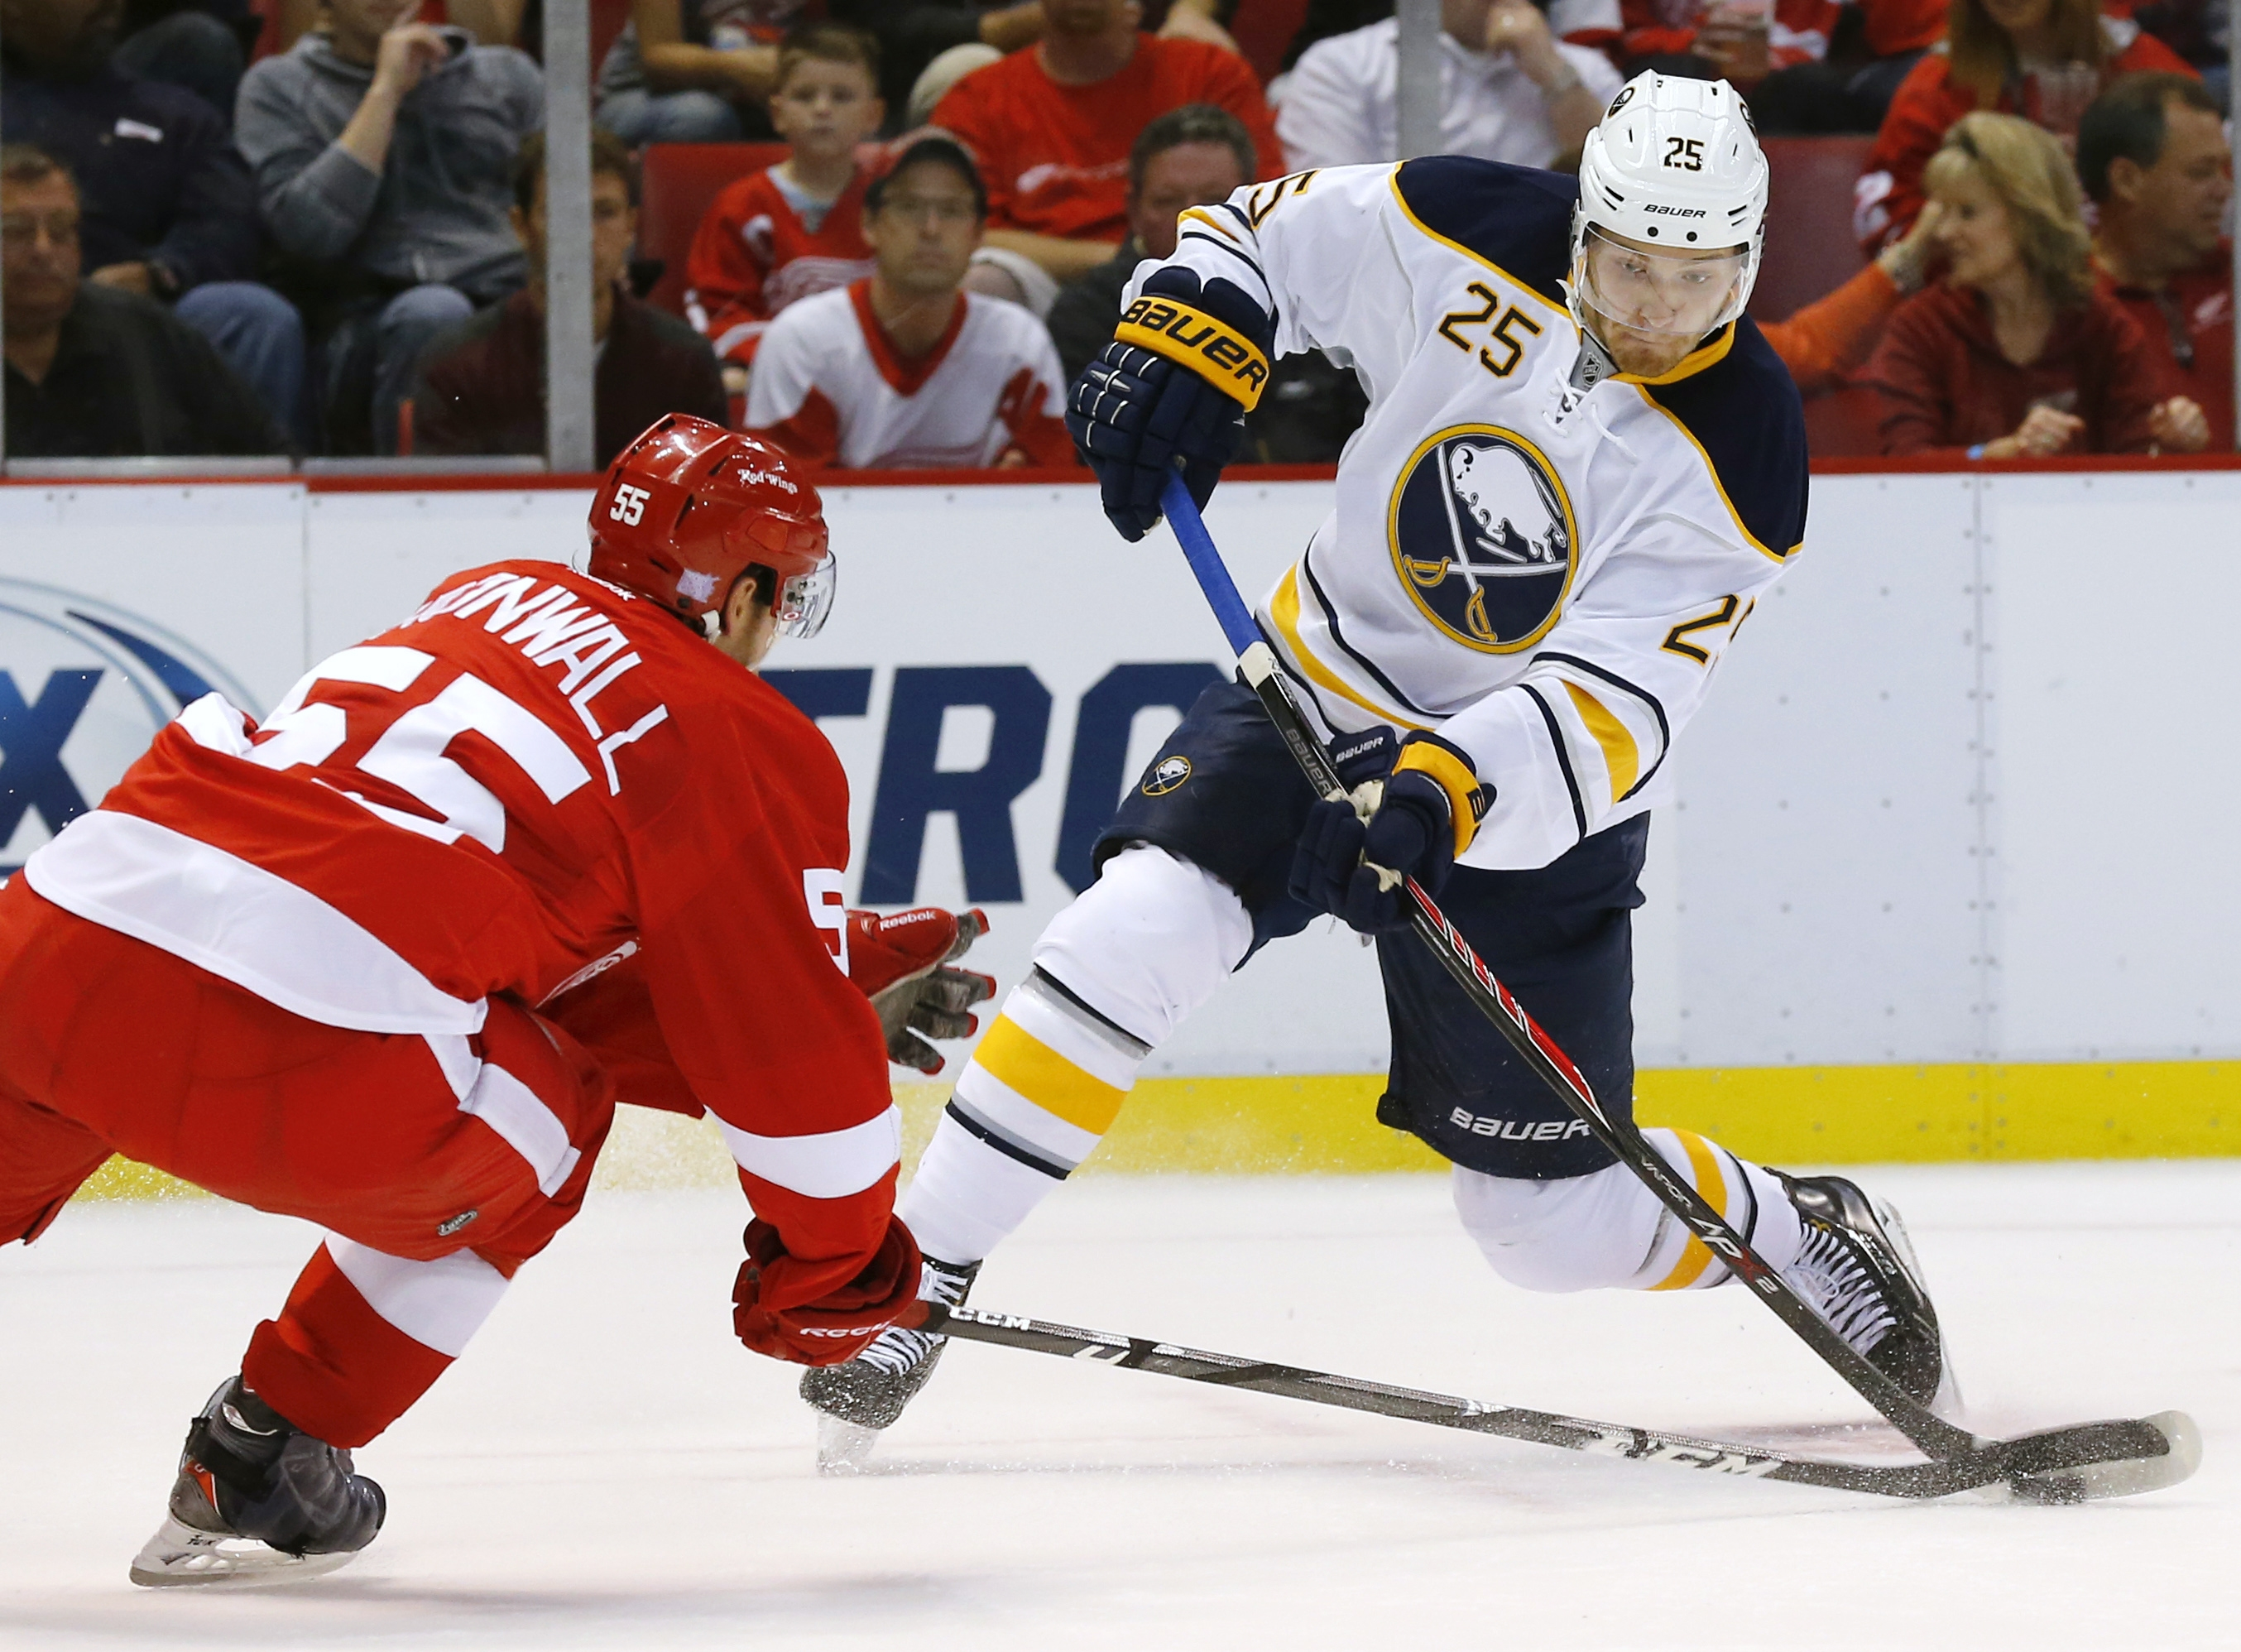 Buffalo Sabres center Mikhail Grigorenko (25), of Russia, shoots as Detroit Red Wings defenseman Niklas Kronwall (55), of Sweden, defends during the first period of an NHL hockey game in Detroit, Wednesday, Oct. 2, 2013. (AP Photo/Paul Sancya)